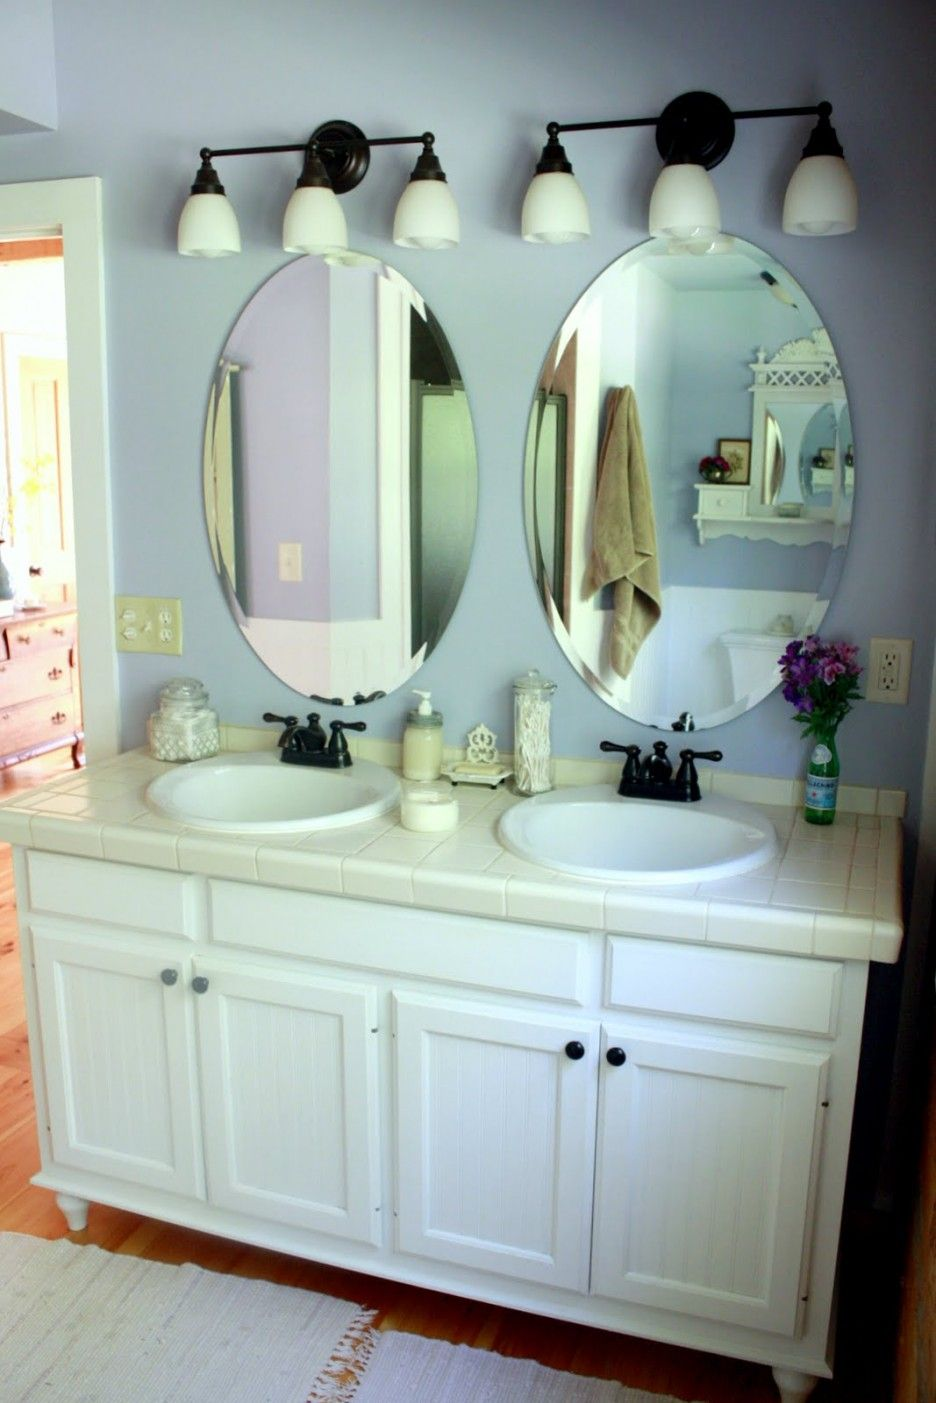 Bathroom oval mirror design right choice for bathrooms splendid